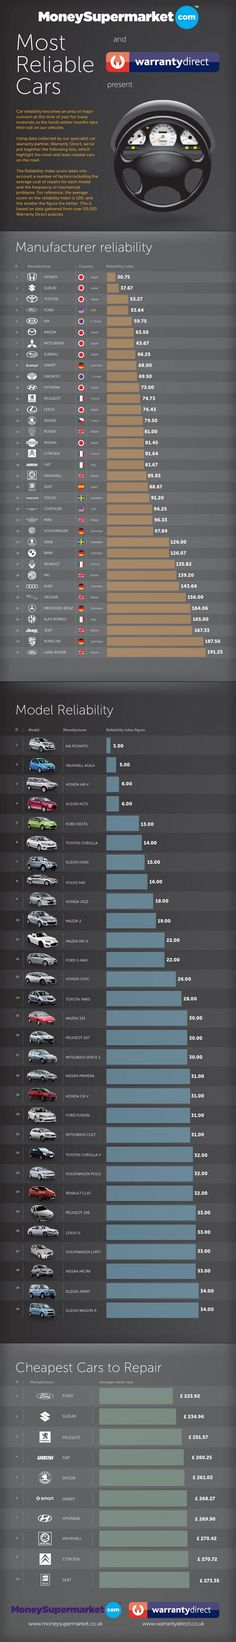 The MoneySupermarket Car Reliability Index #infographic